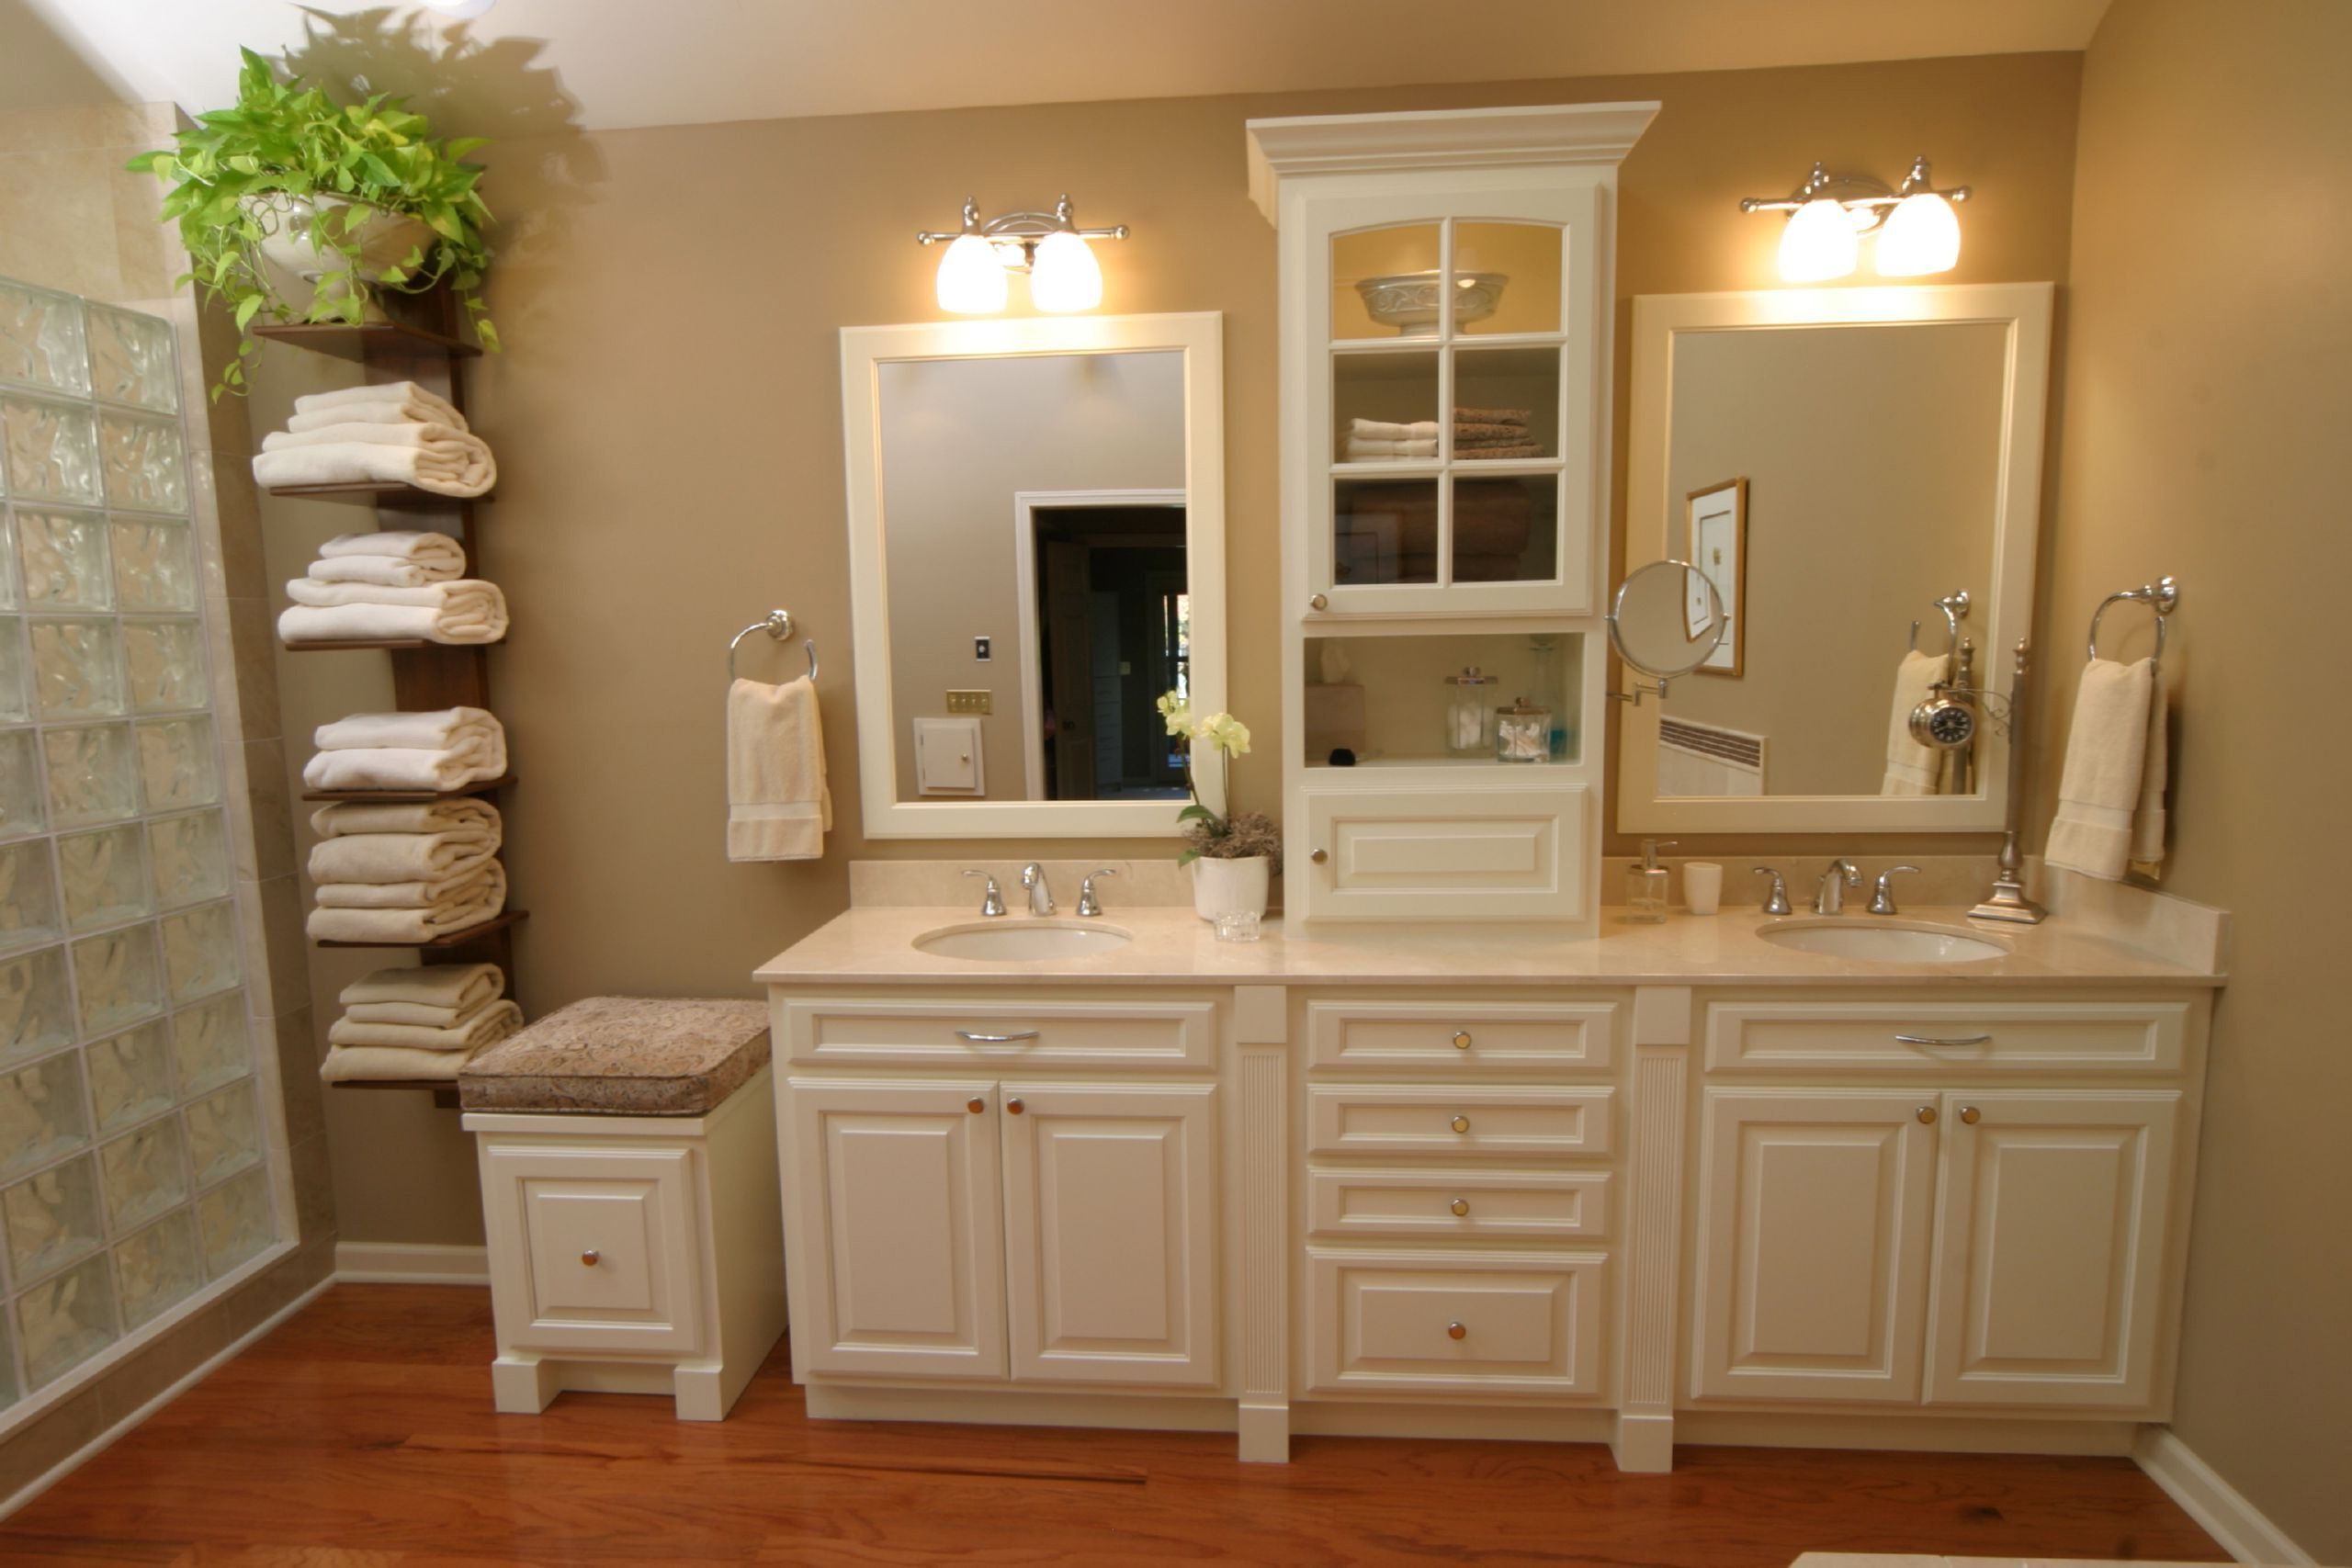 hung deluxe bathroom classy mounted white model mount wall with vanity cabinets cabinet